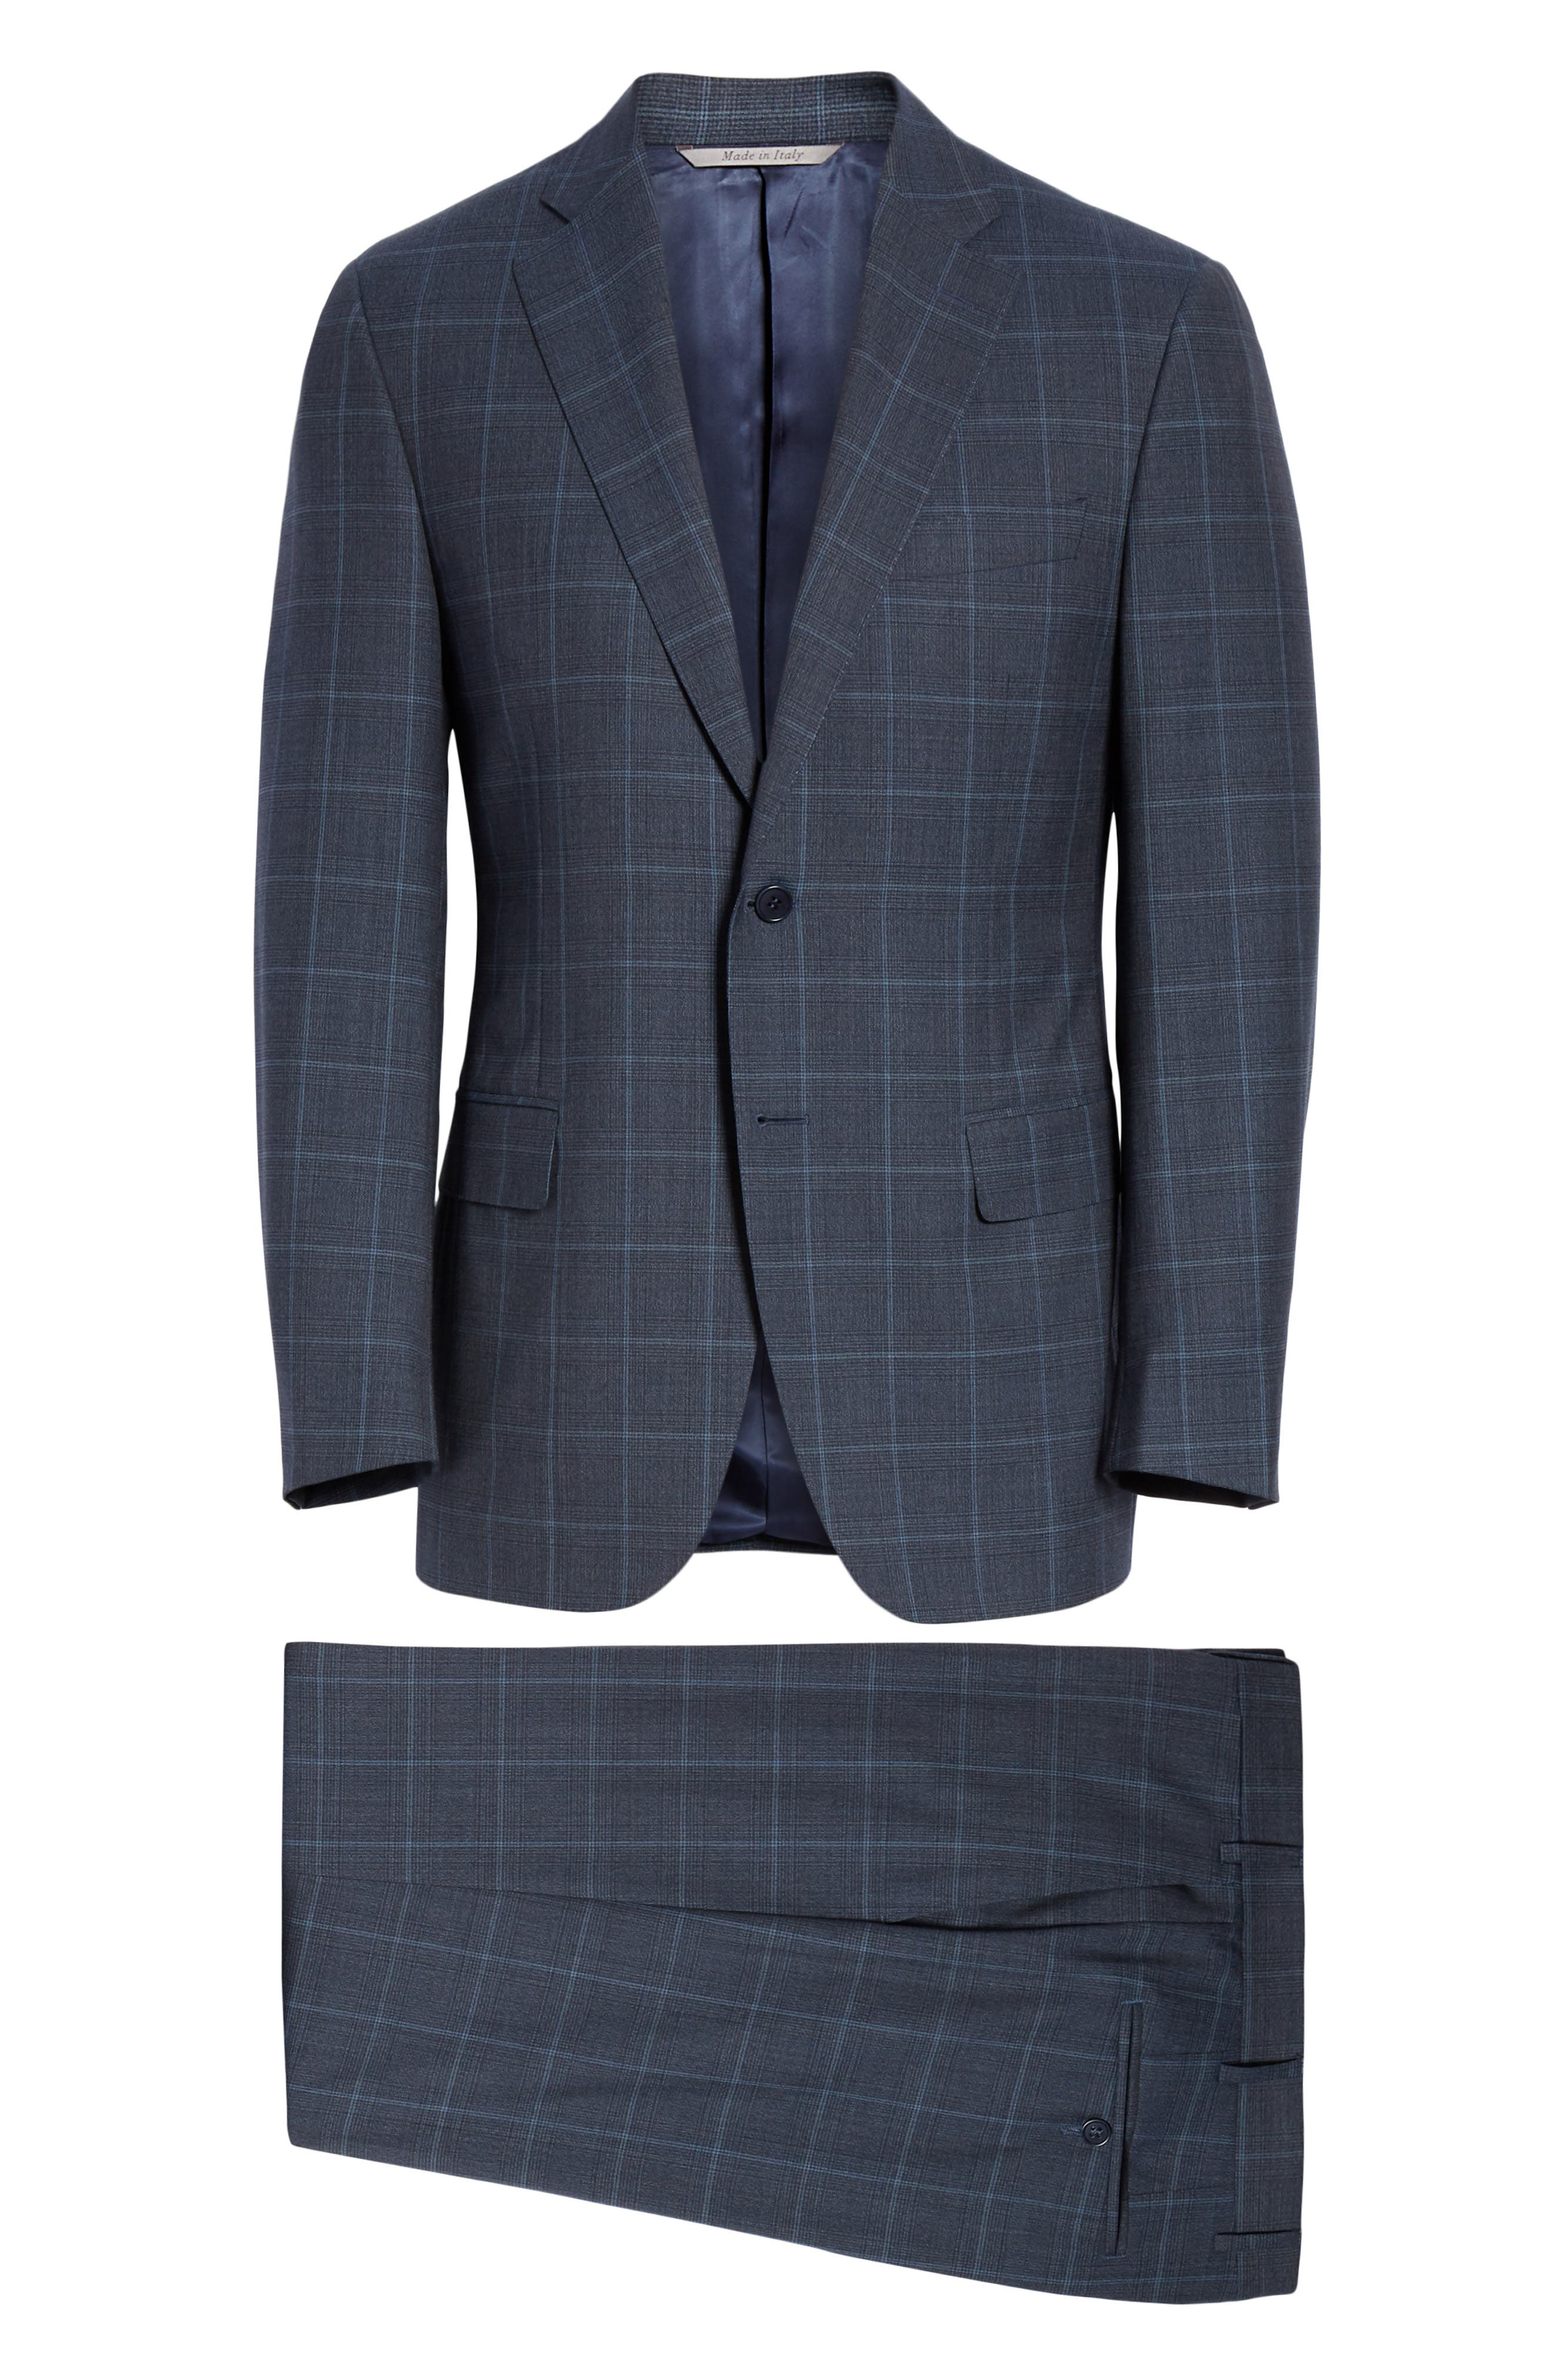 CANALI, Siena Soft Classic Fit Plaid Wool Suit, Alternate thumbnail 8, color, CHARCOAL